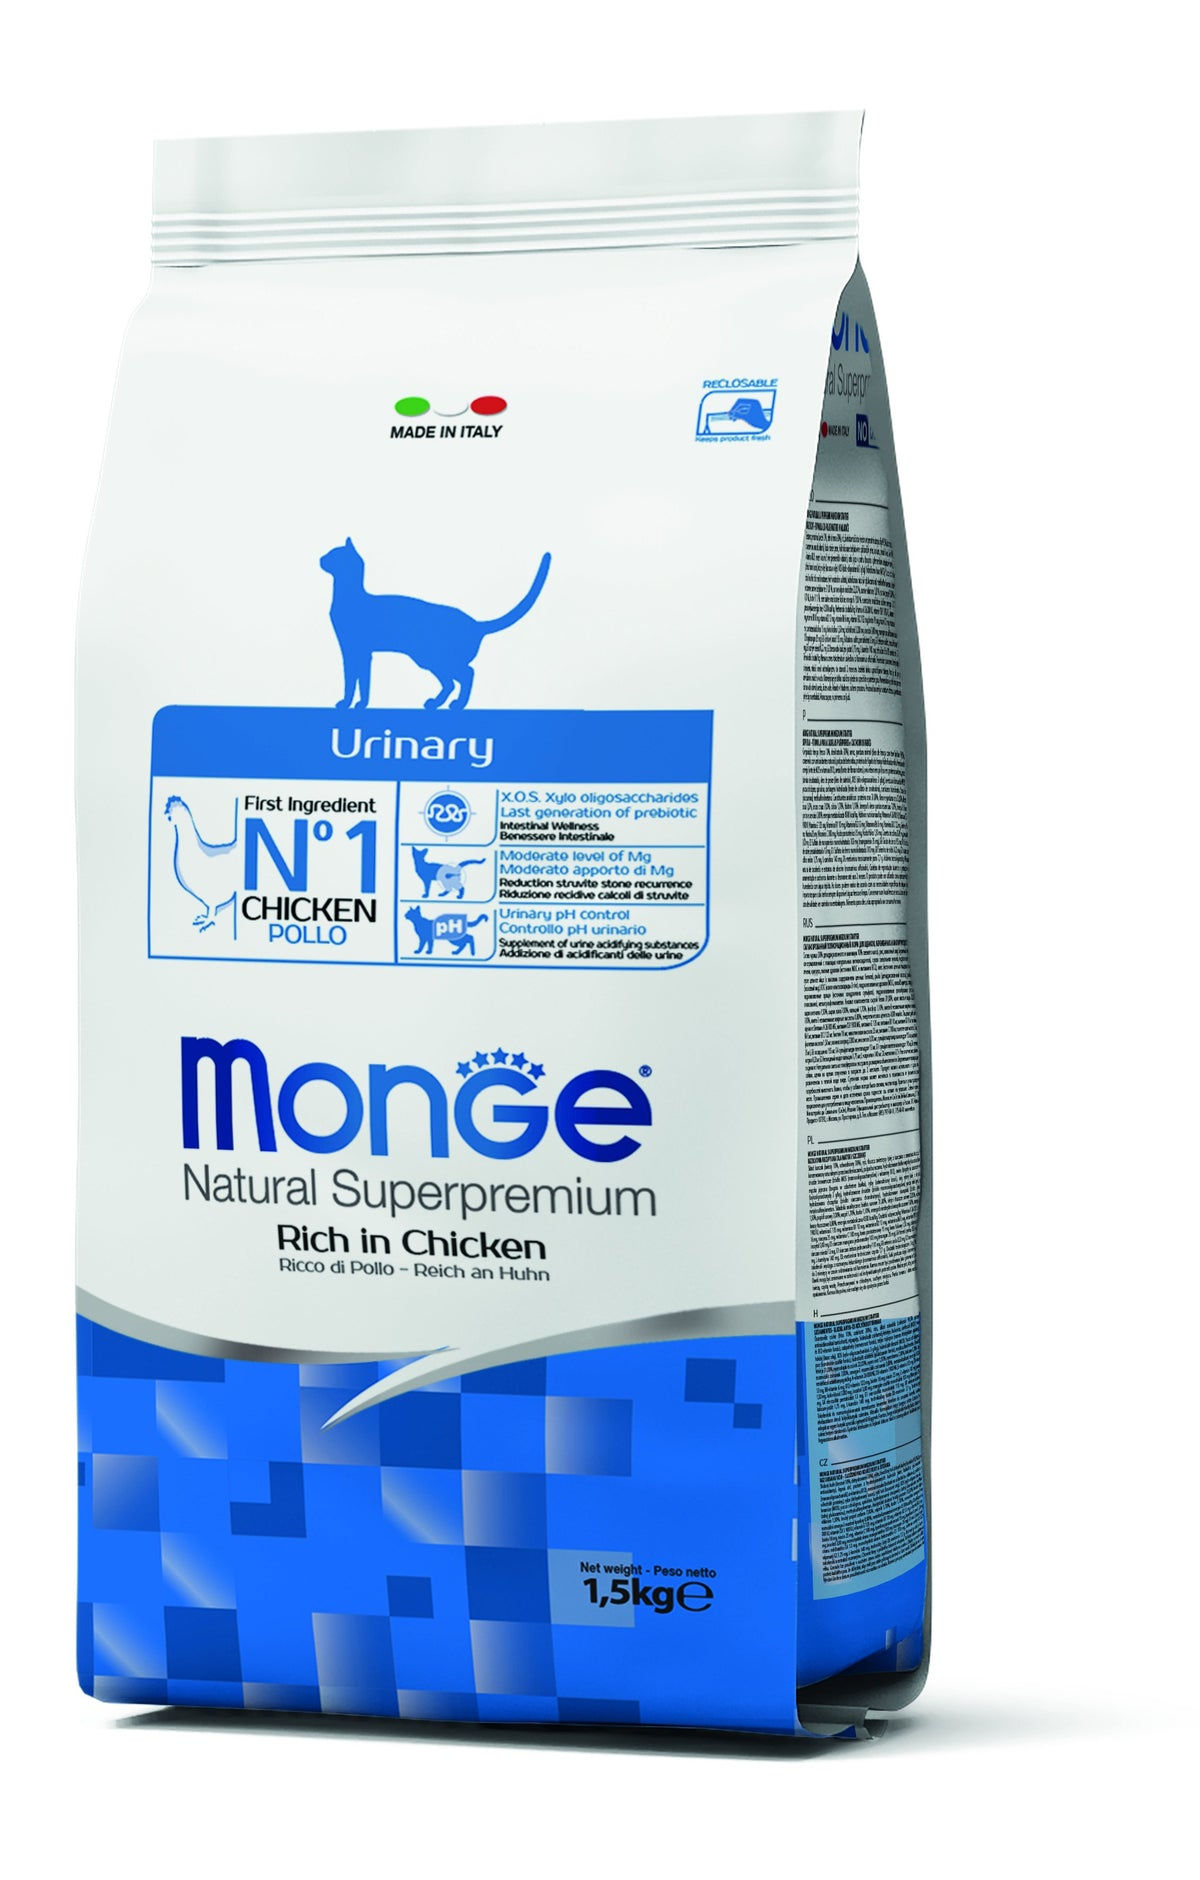 Monge Natural Superpremium secco gatto URINARY